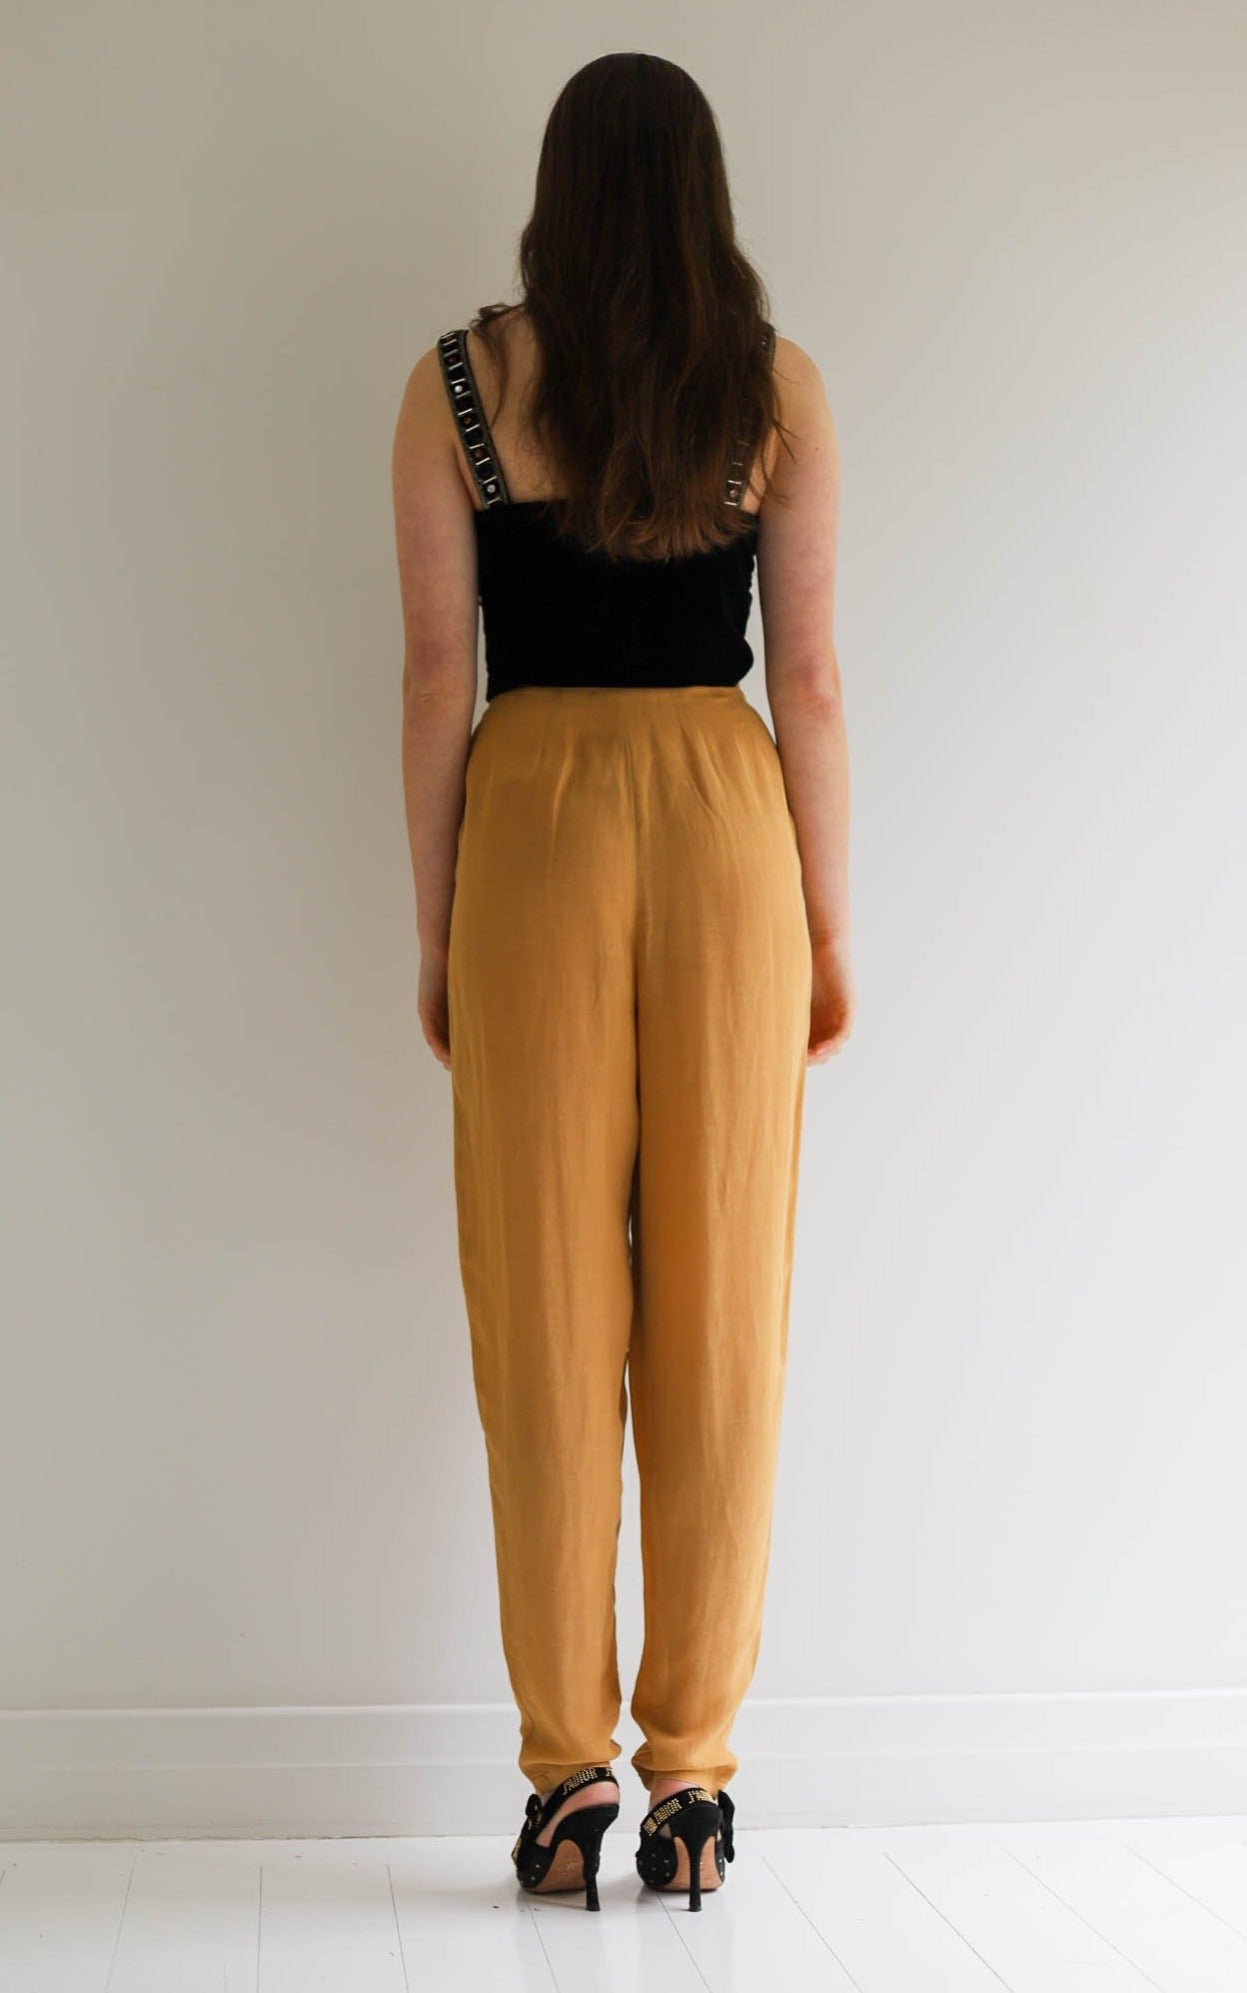 Armani <br> Emporio Armani 90's sheer linen blend high waisted tailored pants